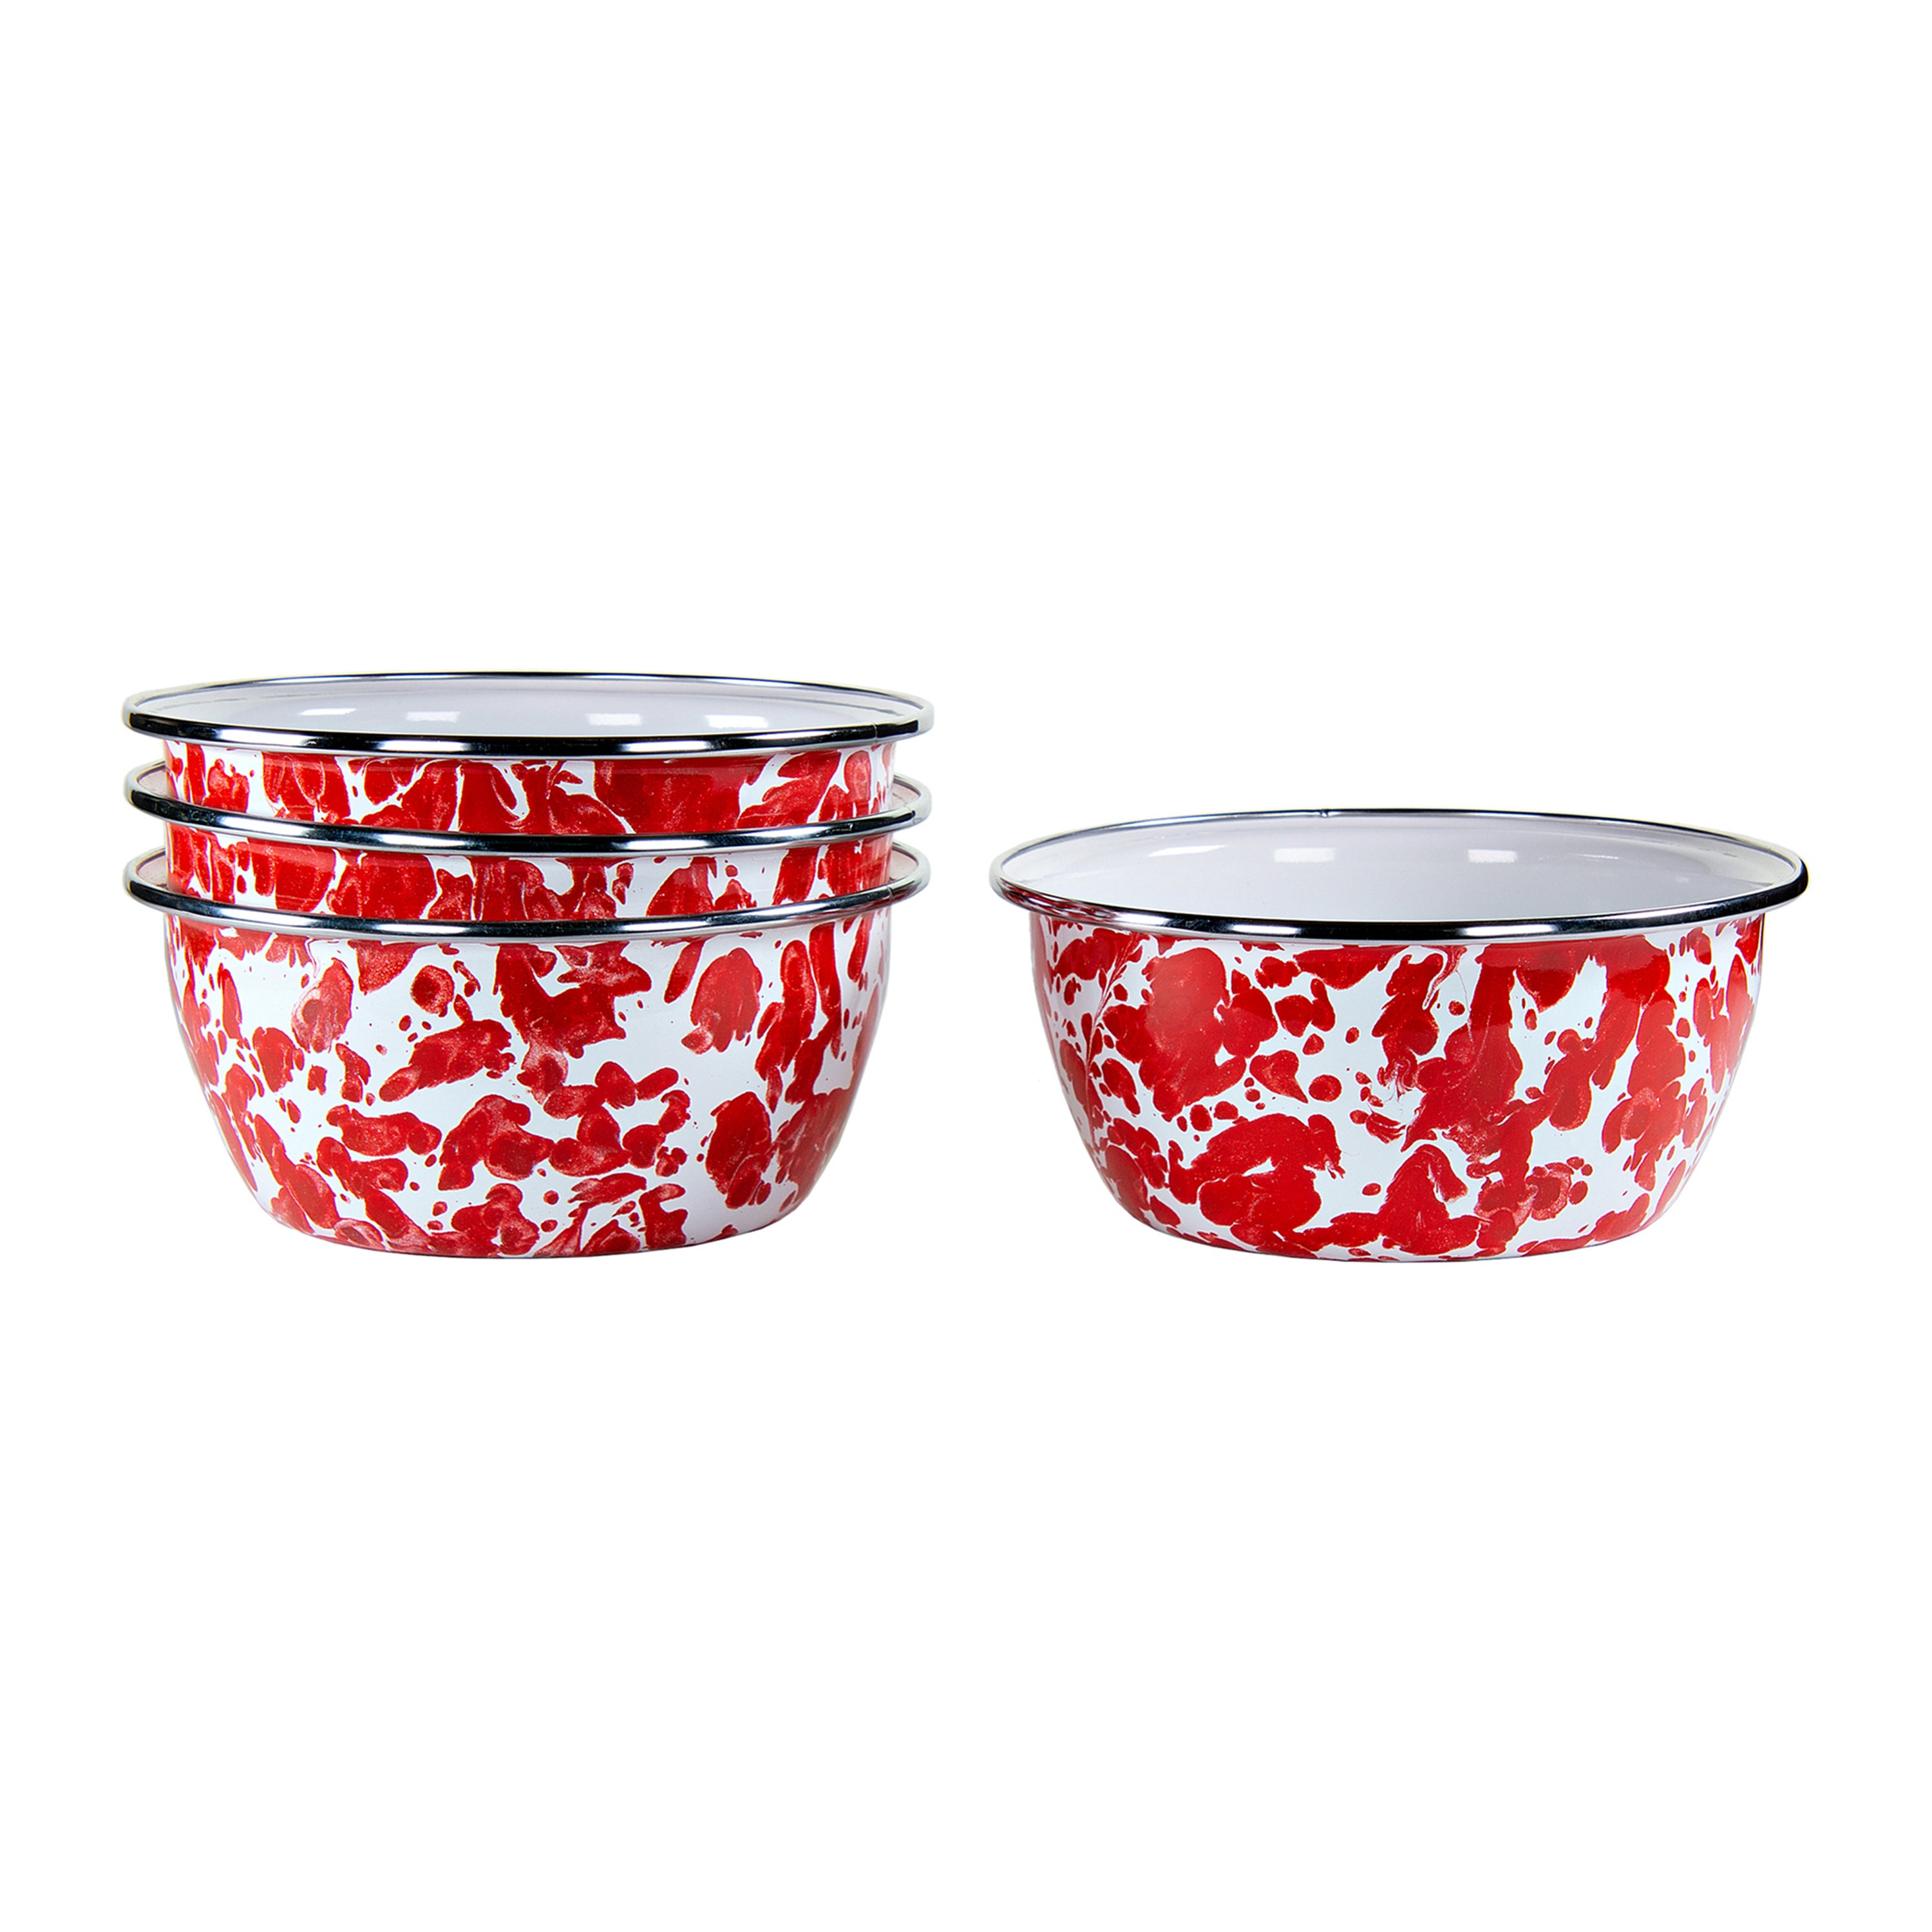 RD61S4 - Set of 4 Red Swirl Salad Bowls Image 1